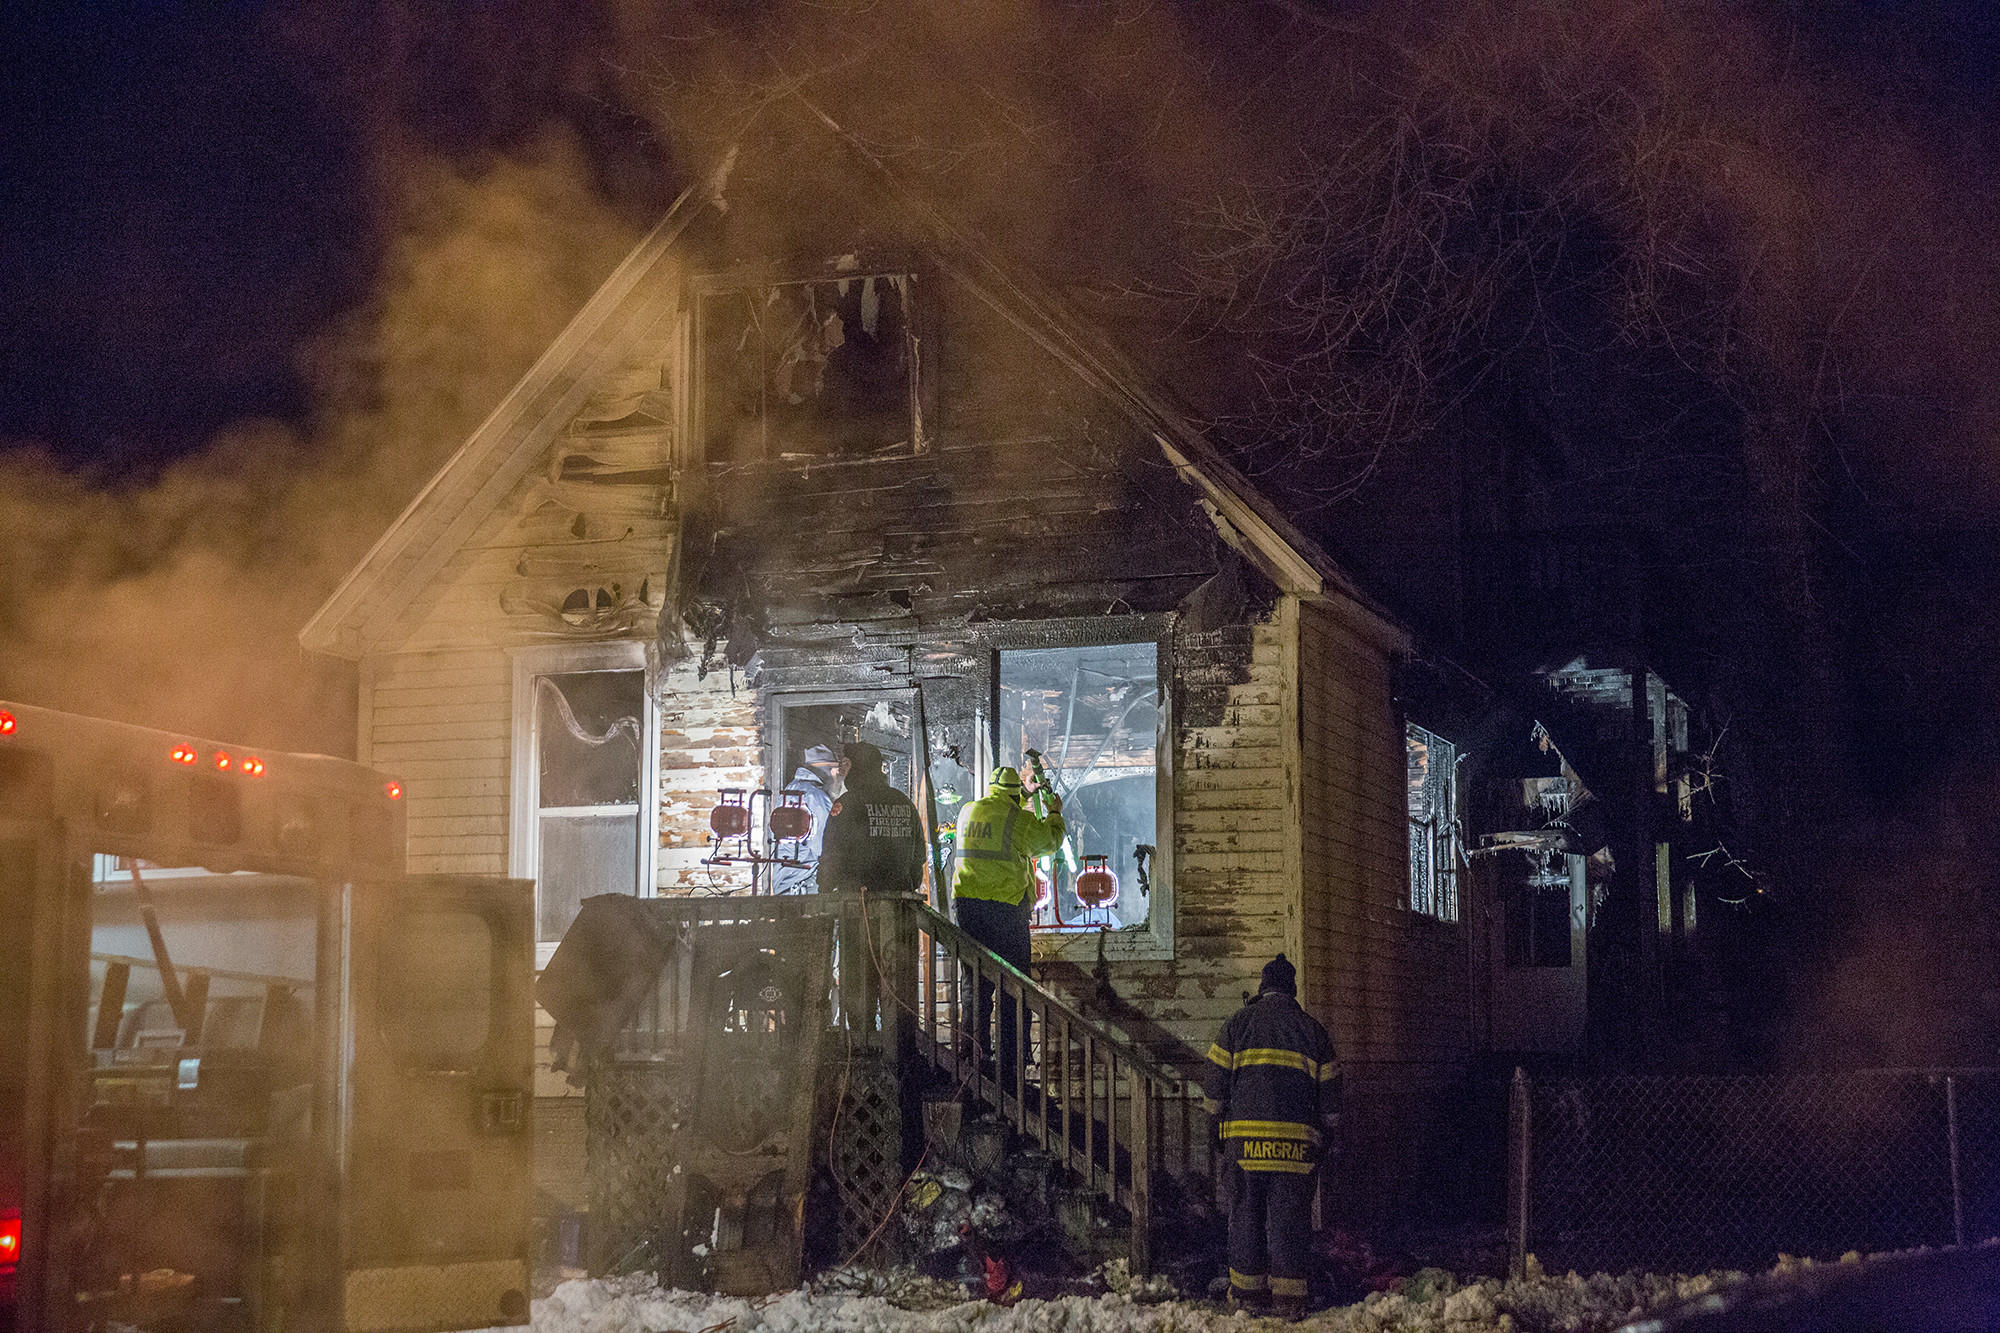 Fire investigators at the scene of the fire in the 600 block of Sibley Street in Hammond, Ind. on Thursday, Jan. 9, 2014.